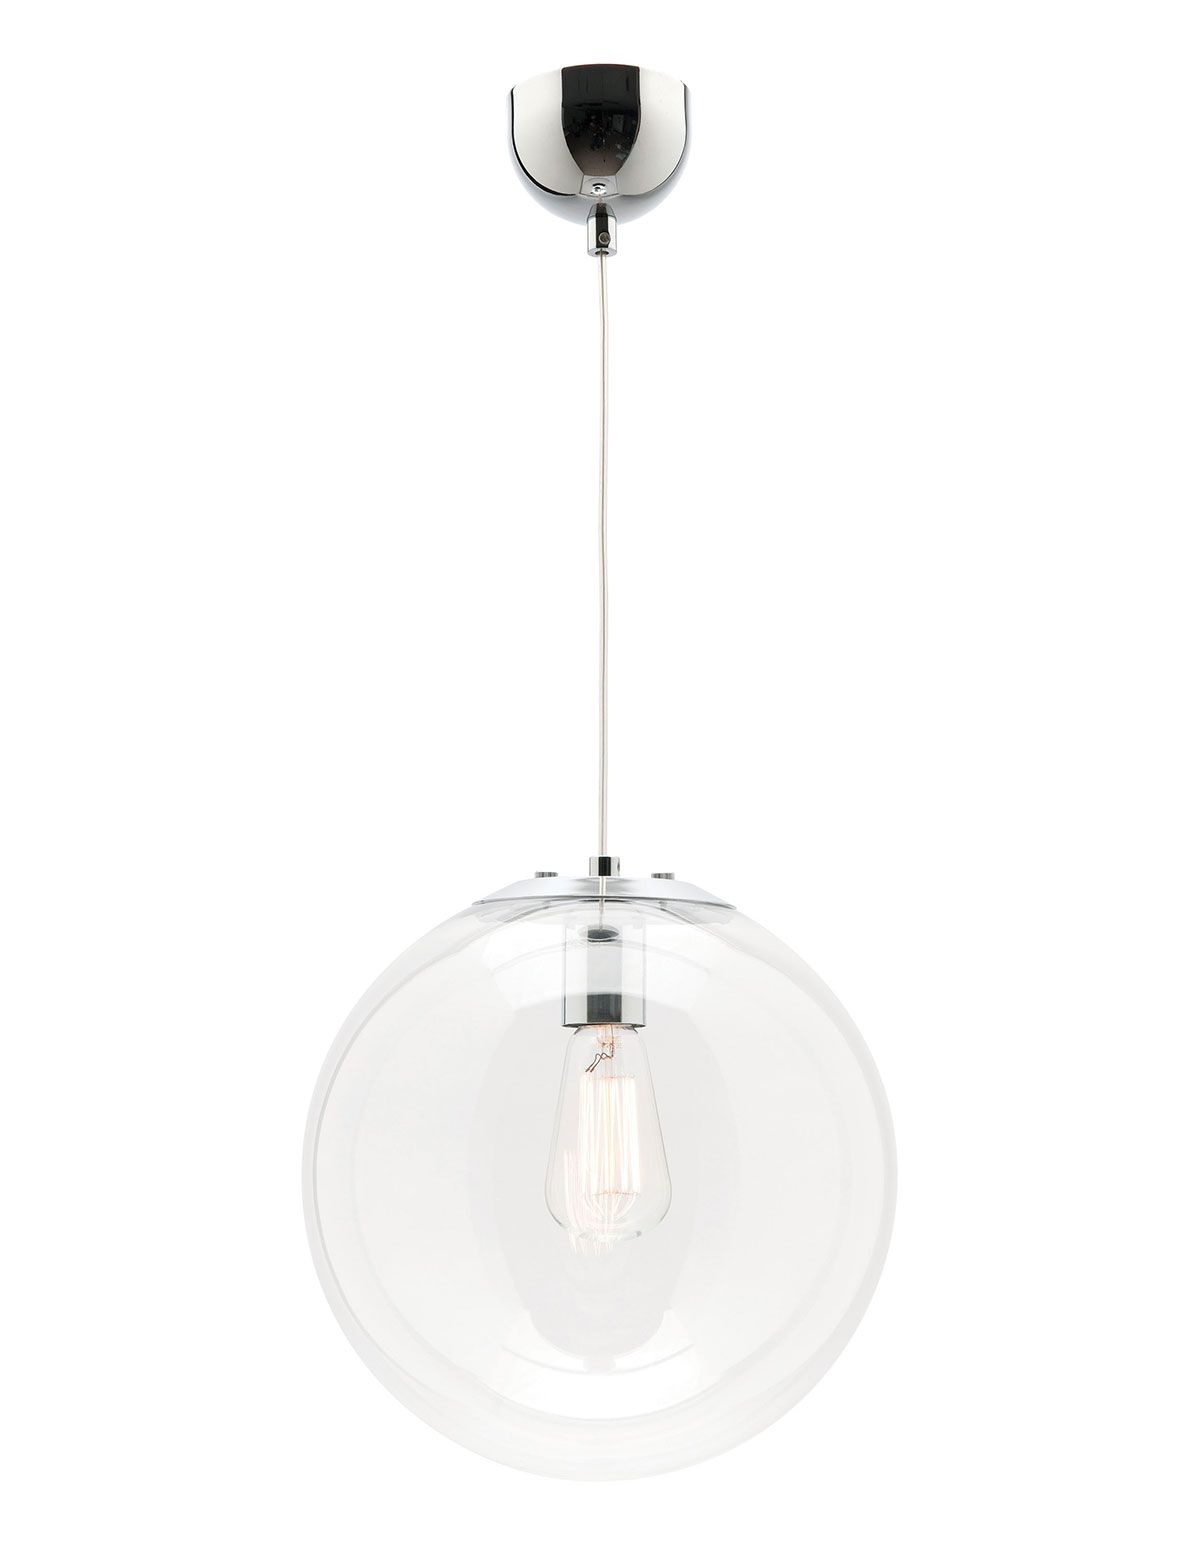 Buy Mercator Lighting's Toledo 1 Light Small Pendant Clear - MP1631/25 at OnlineLighting.com.au. Visit our online store today or call us at 1300 791 345!